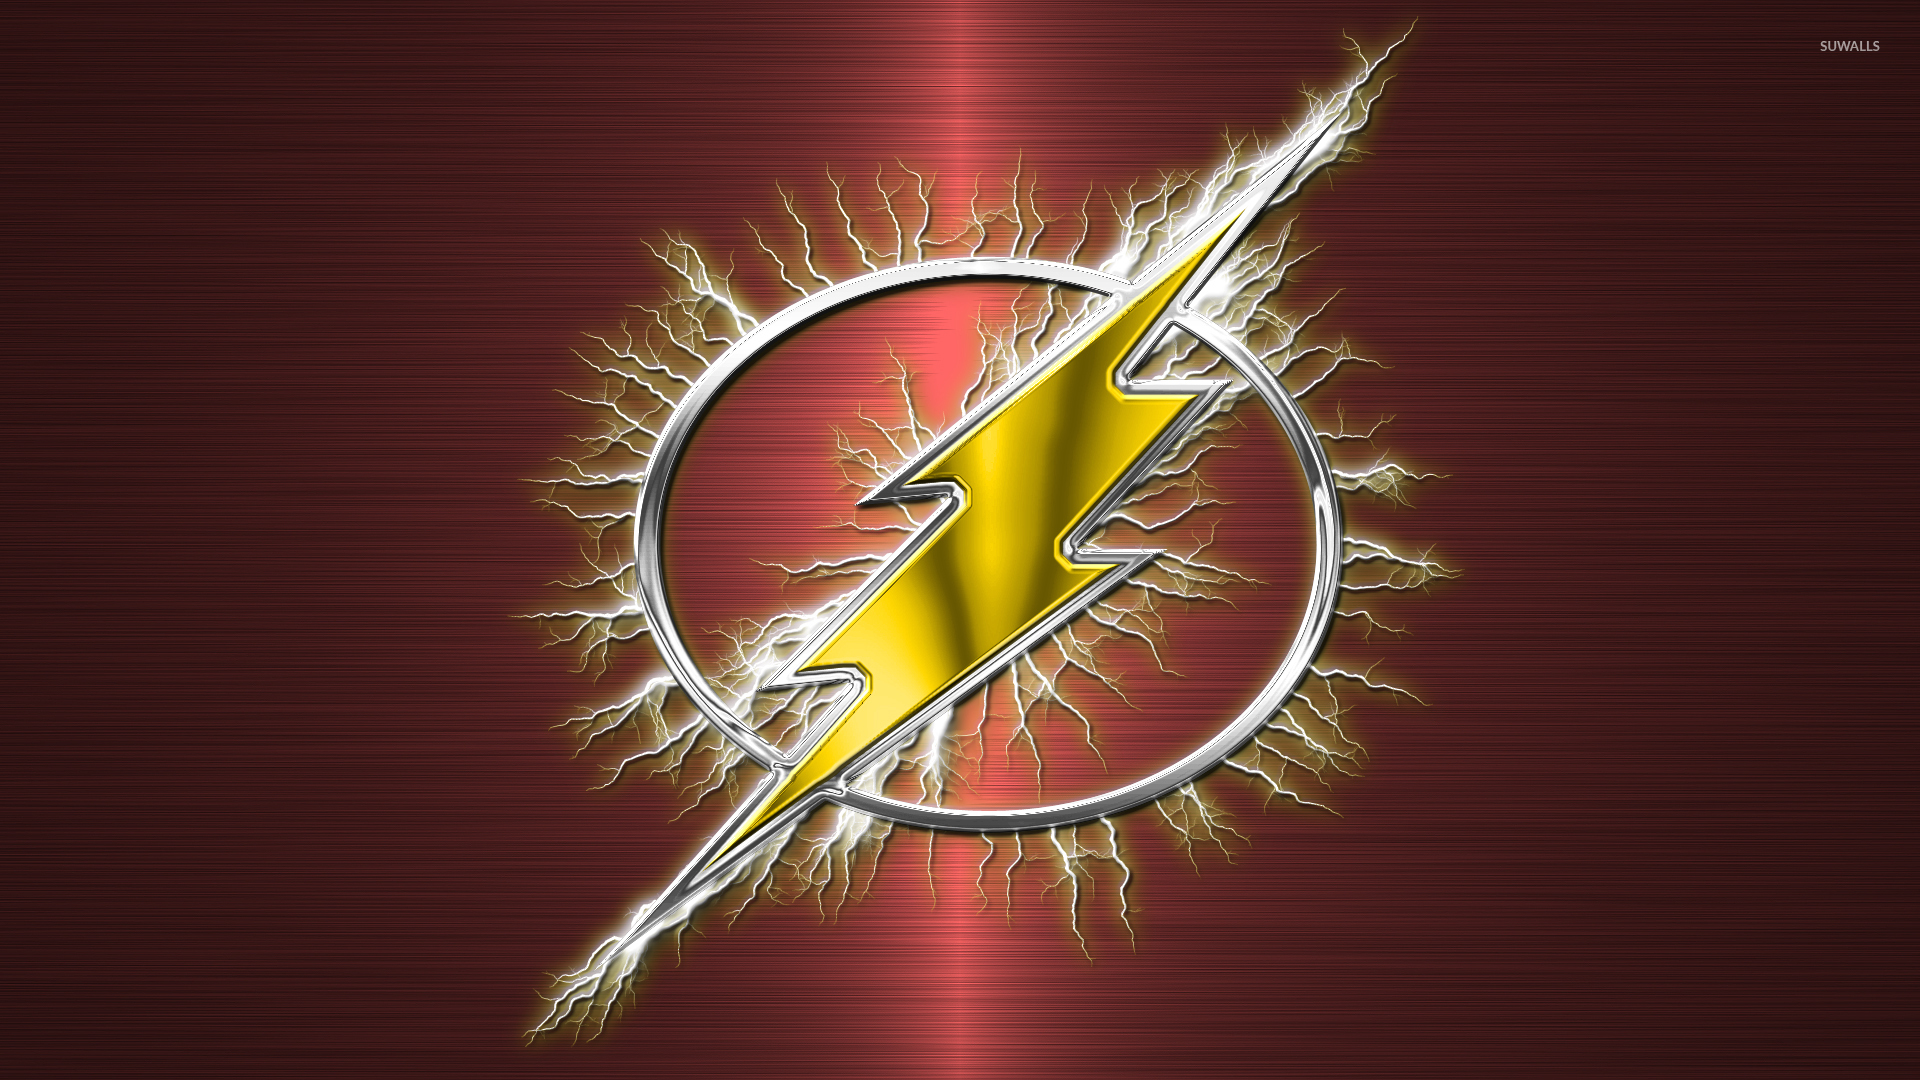 Flash Flashy Logo Wallpaper 1920x1080 Jpg